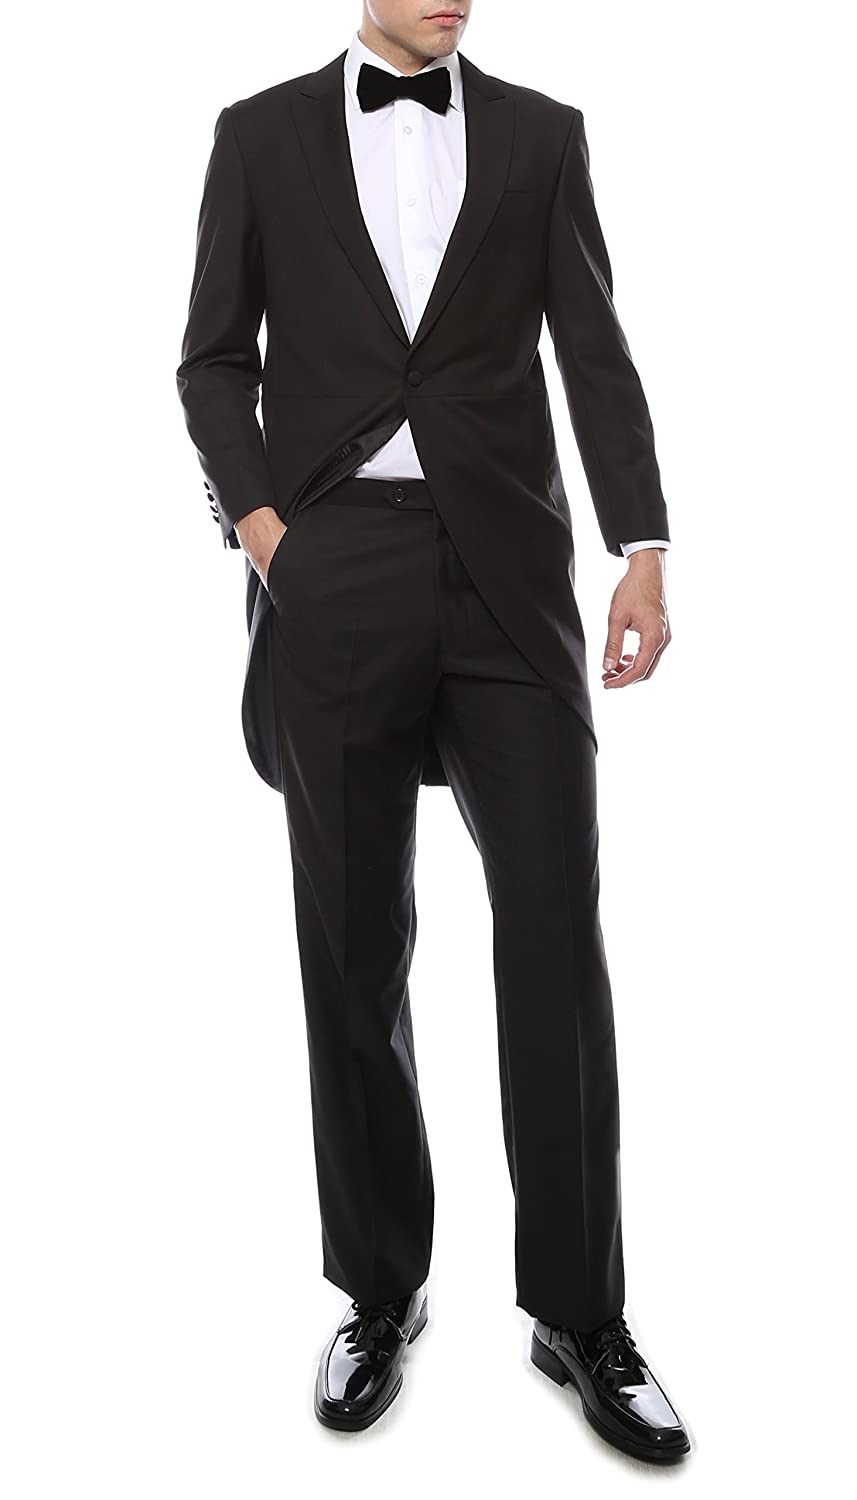 1920s Men's Suits History Victorian Tail Tuxedo  AT vintagedancer.com